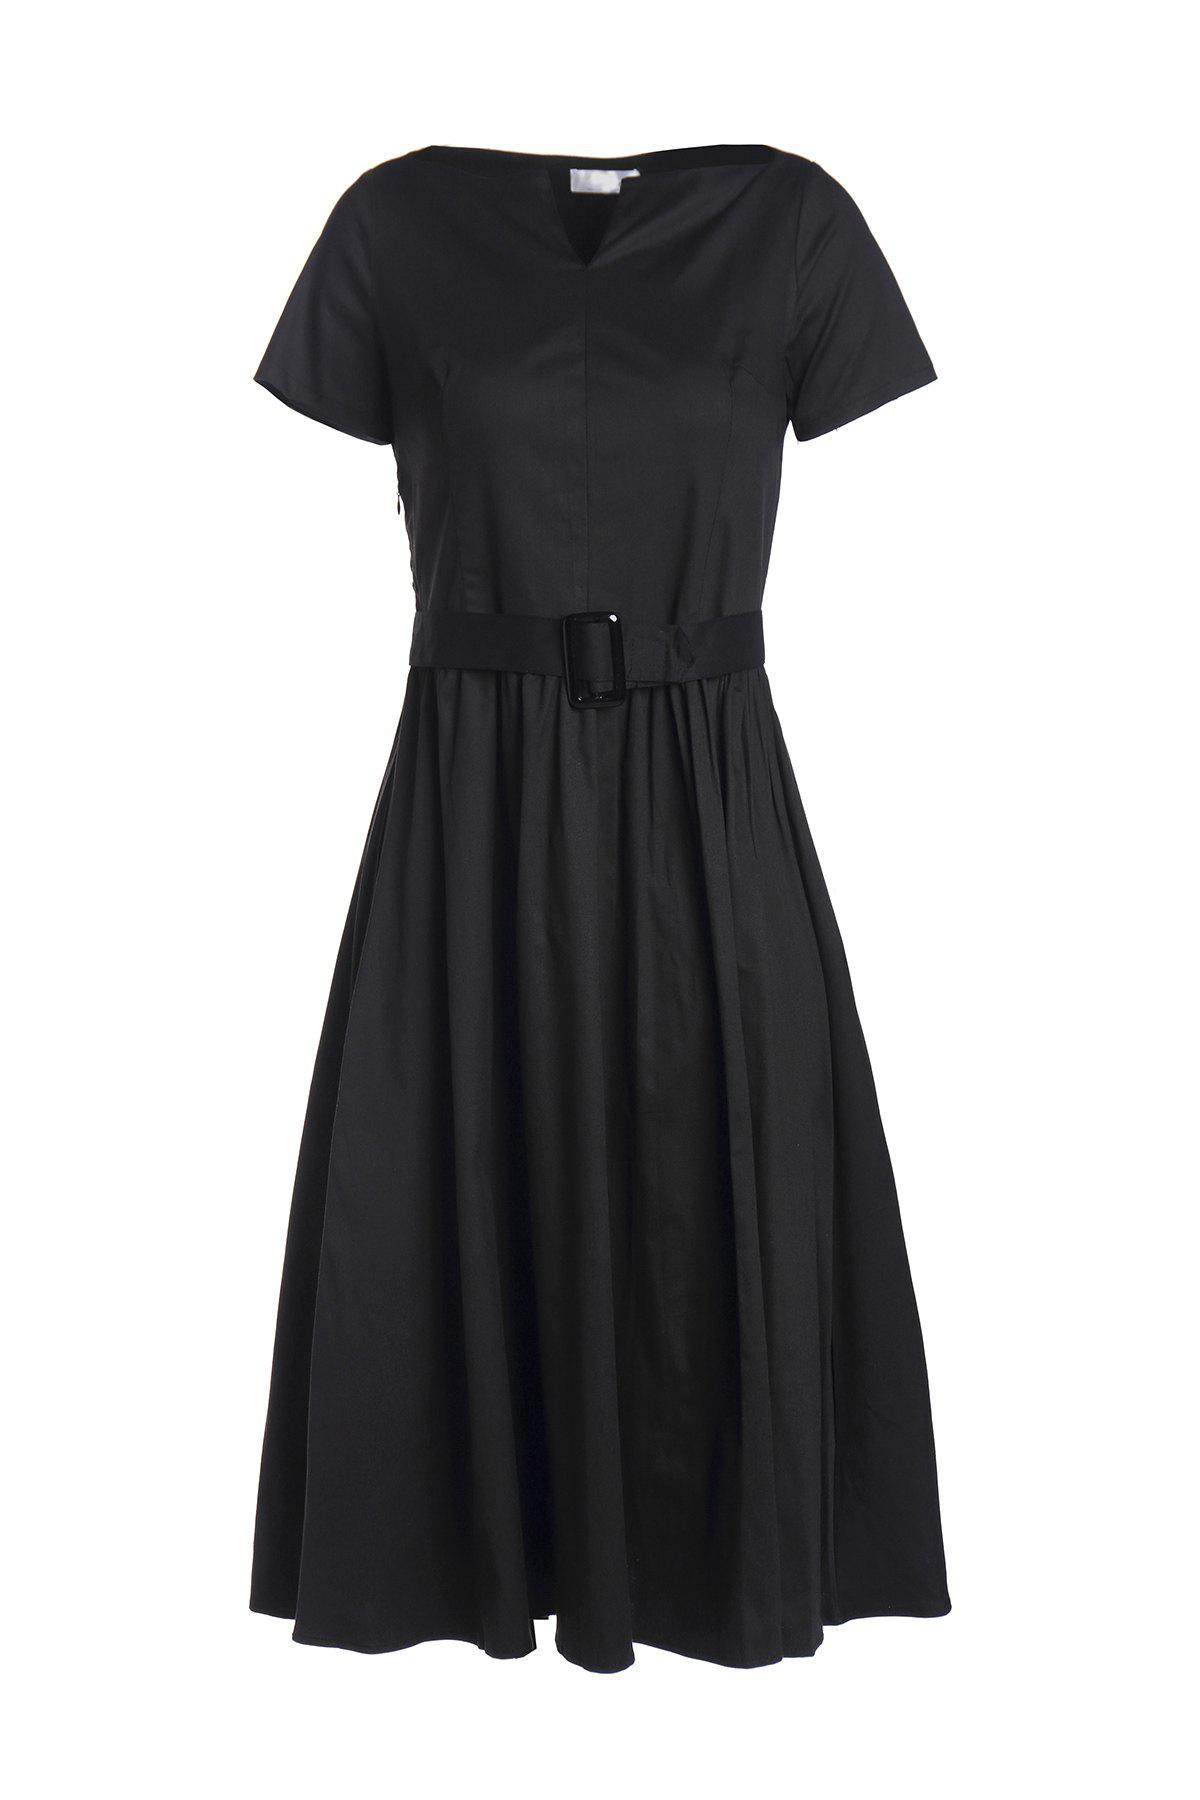 Retro Style V Neck Short Sleeve Solid Color Belted Women's Ball Gown Dress - BLACK M